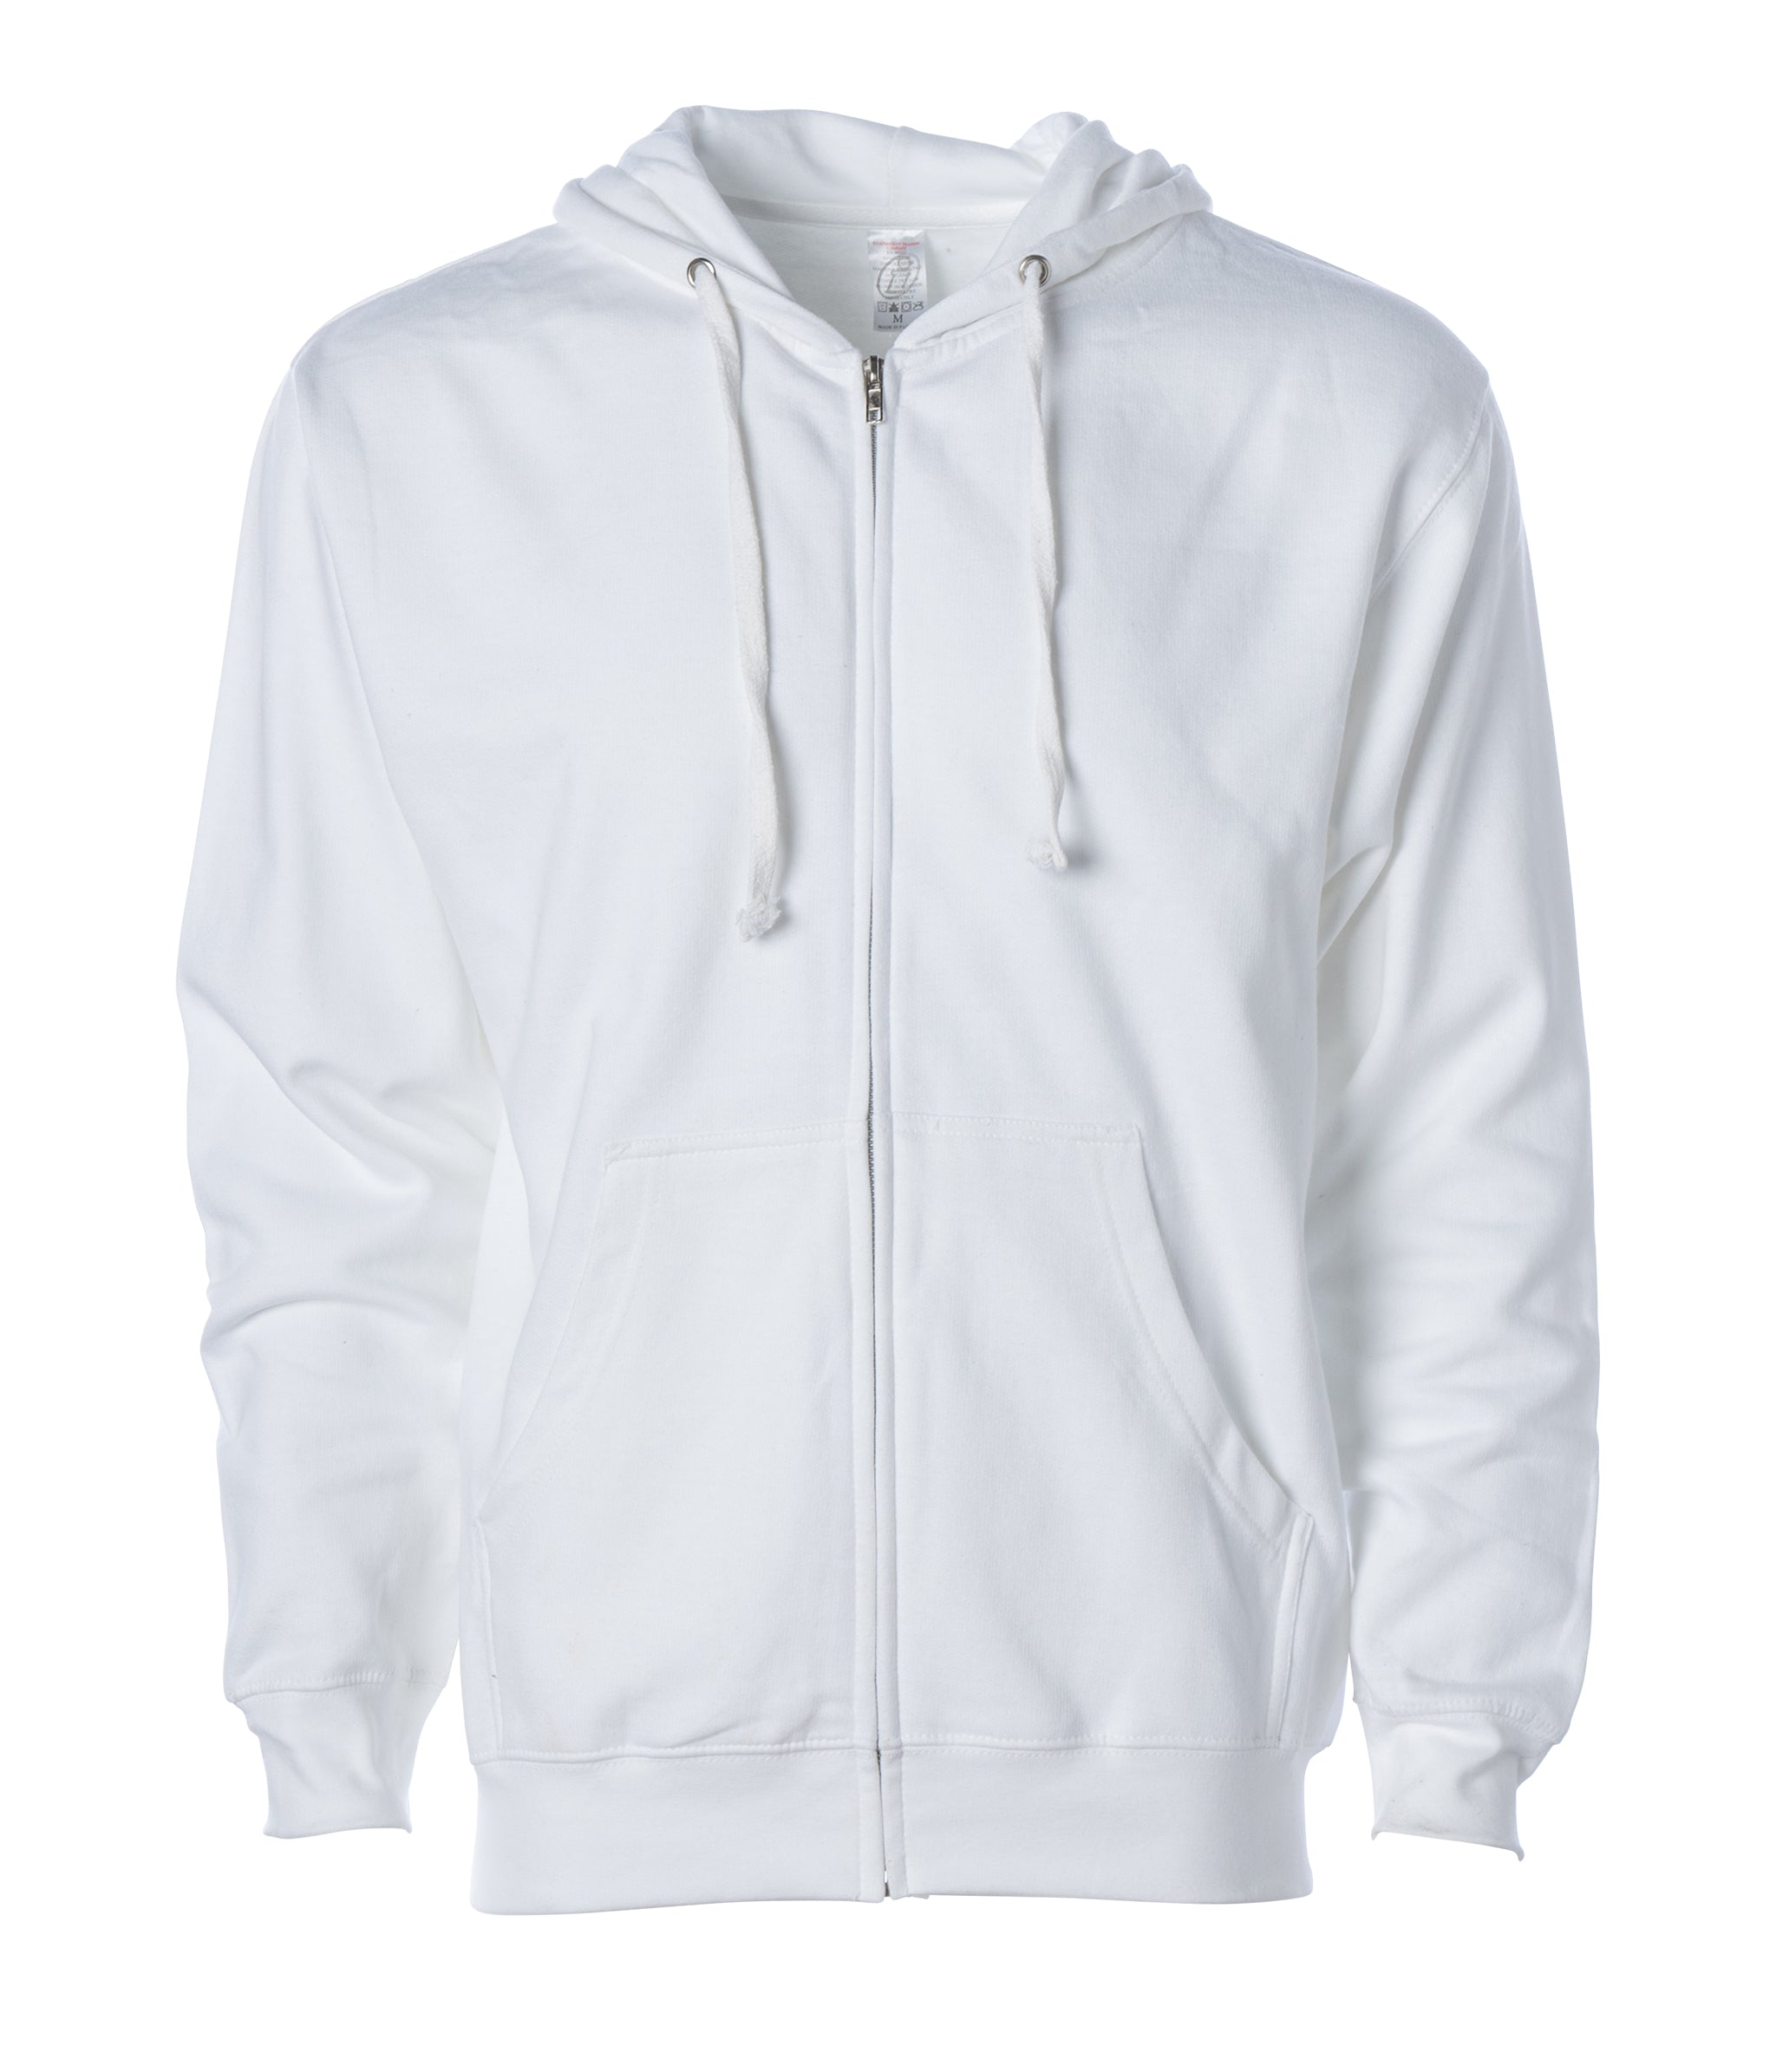 Independent Trading Co 2XL White Mens Midweight Full-Zip Hooded Sweatshirt